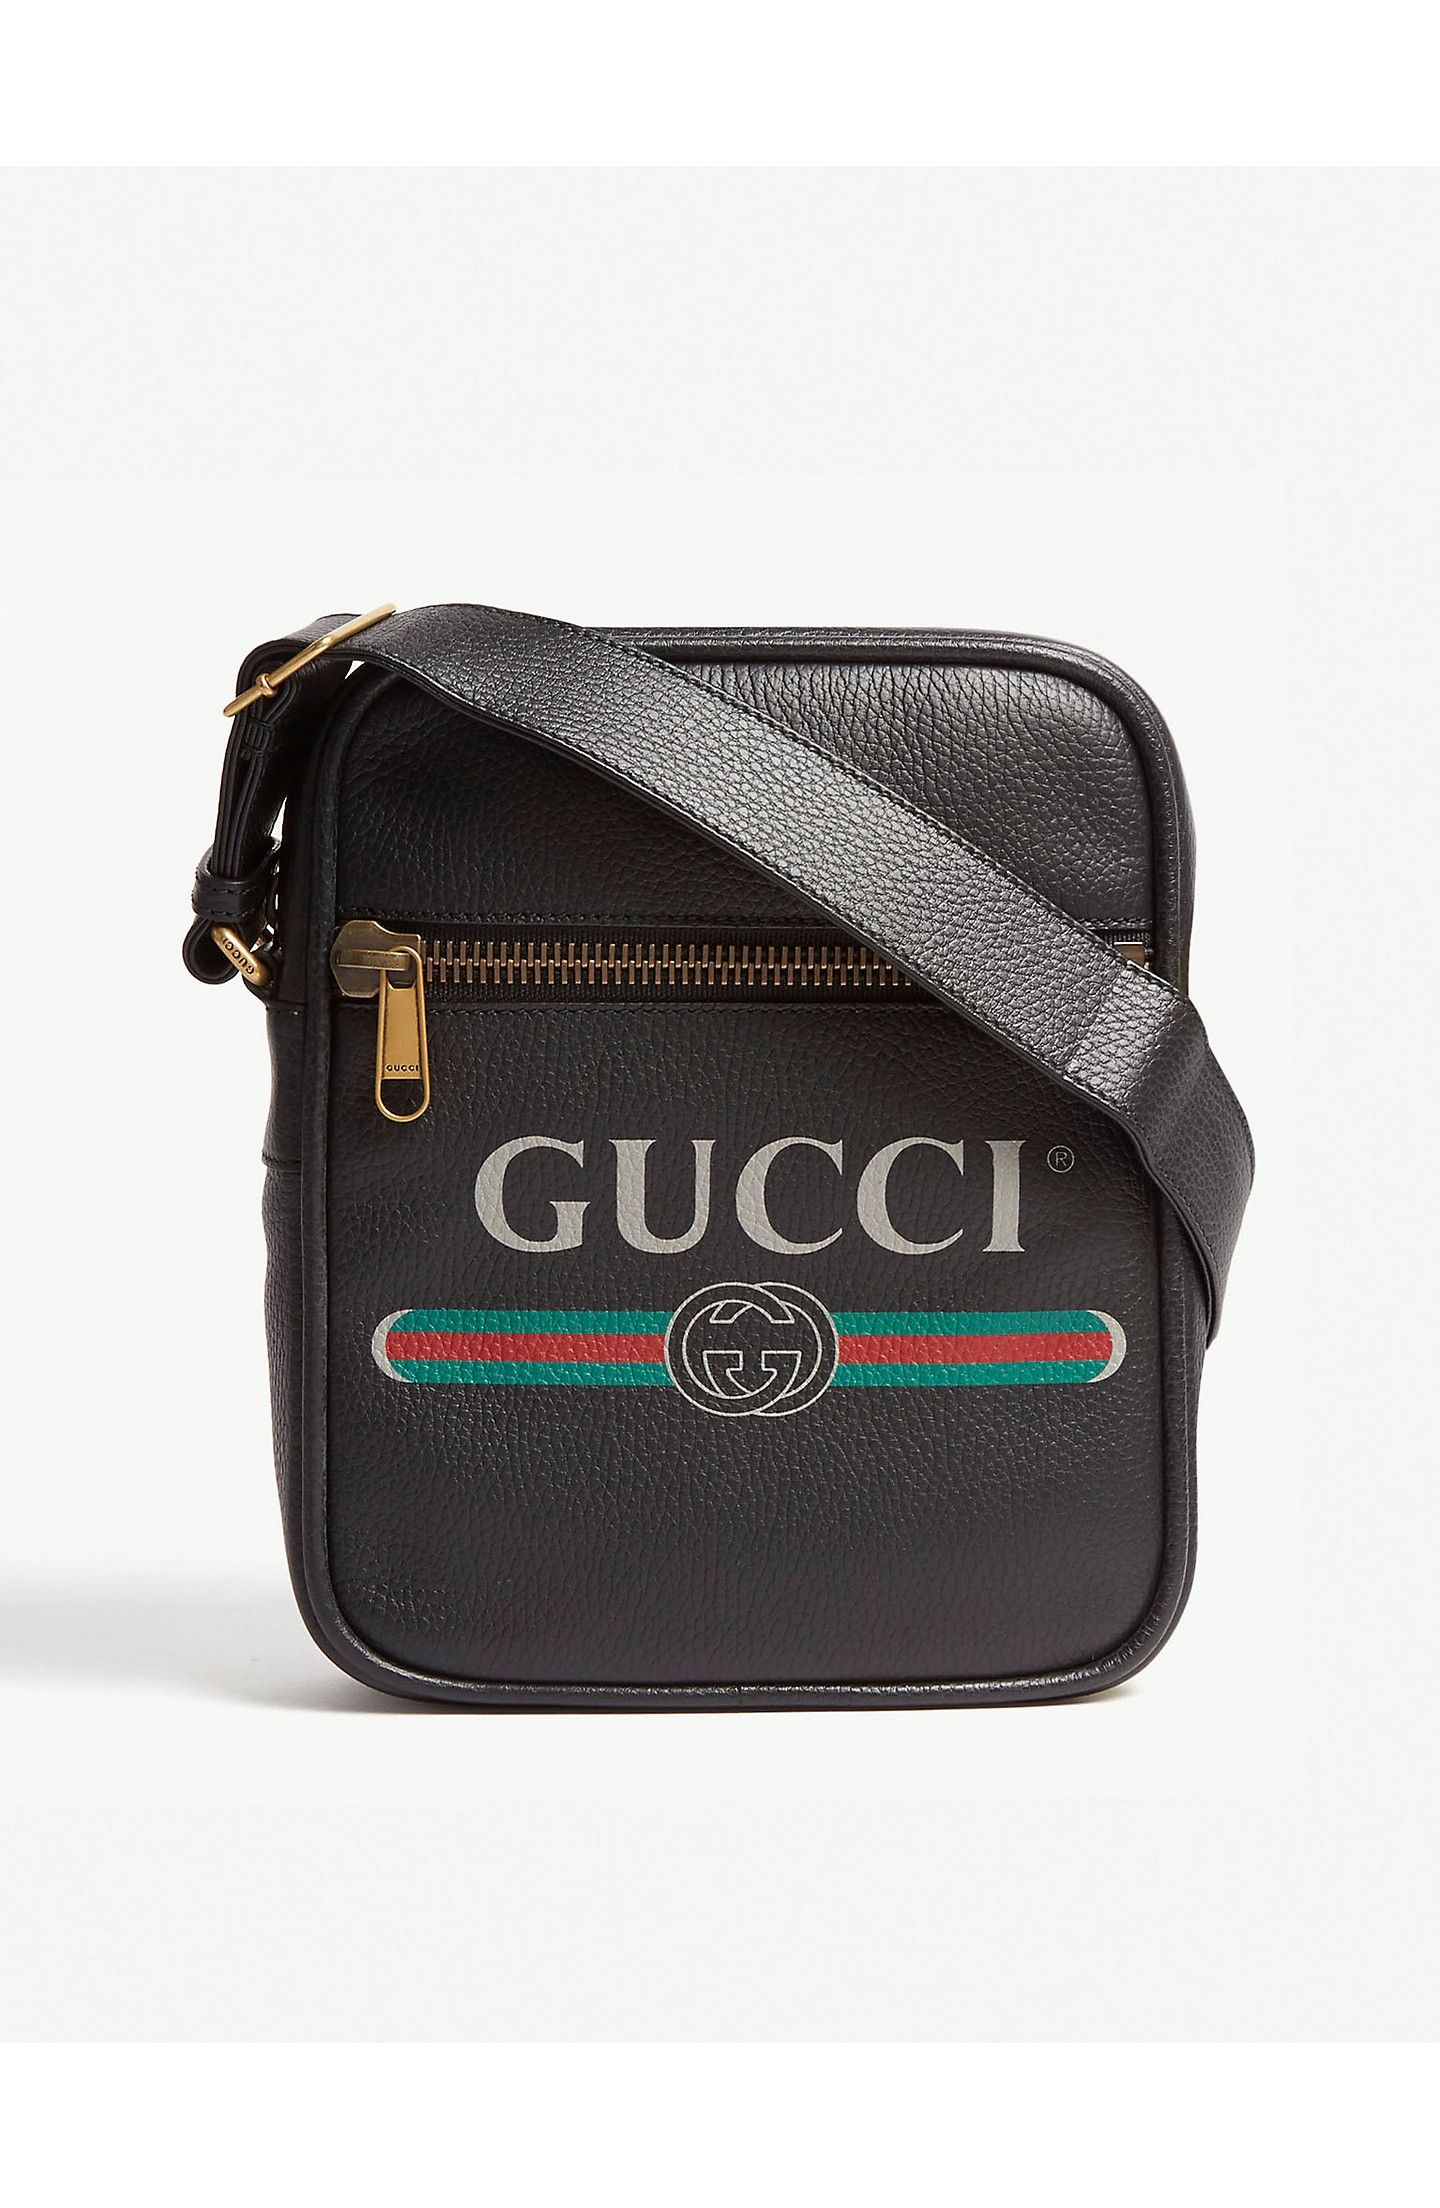 d5242d7e4d91 GUCCI Leather messenger bag in 2019